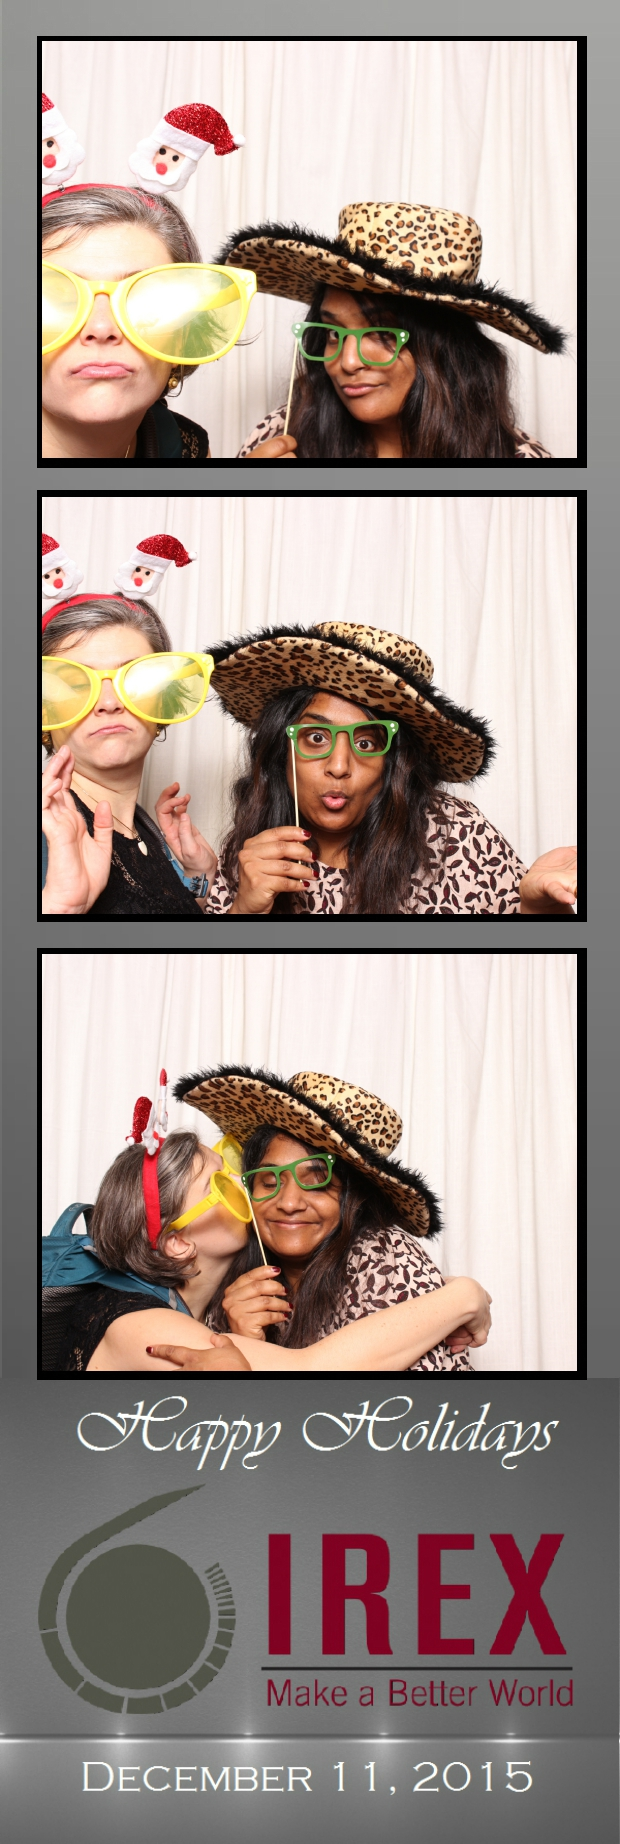 Guest House Events Photo Booth Strips IREX (99).jpg